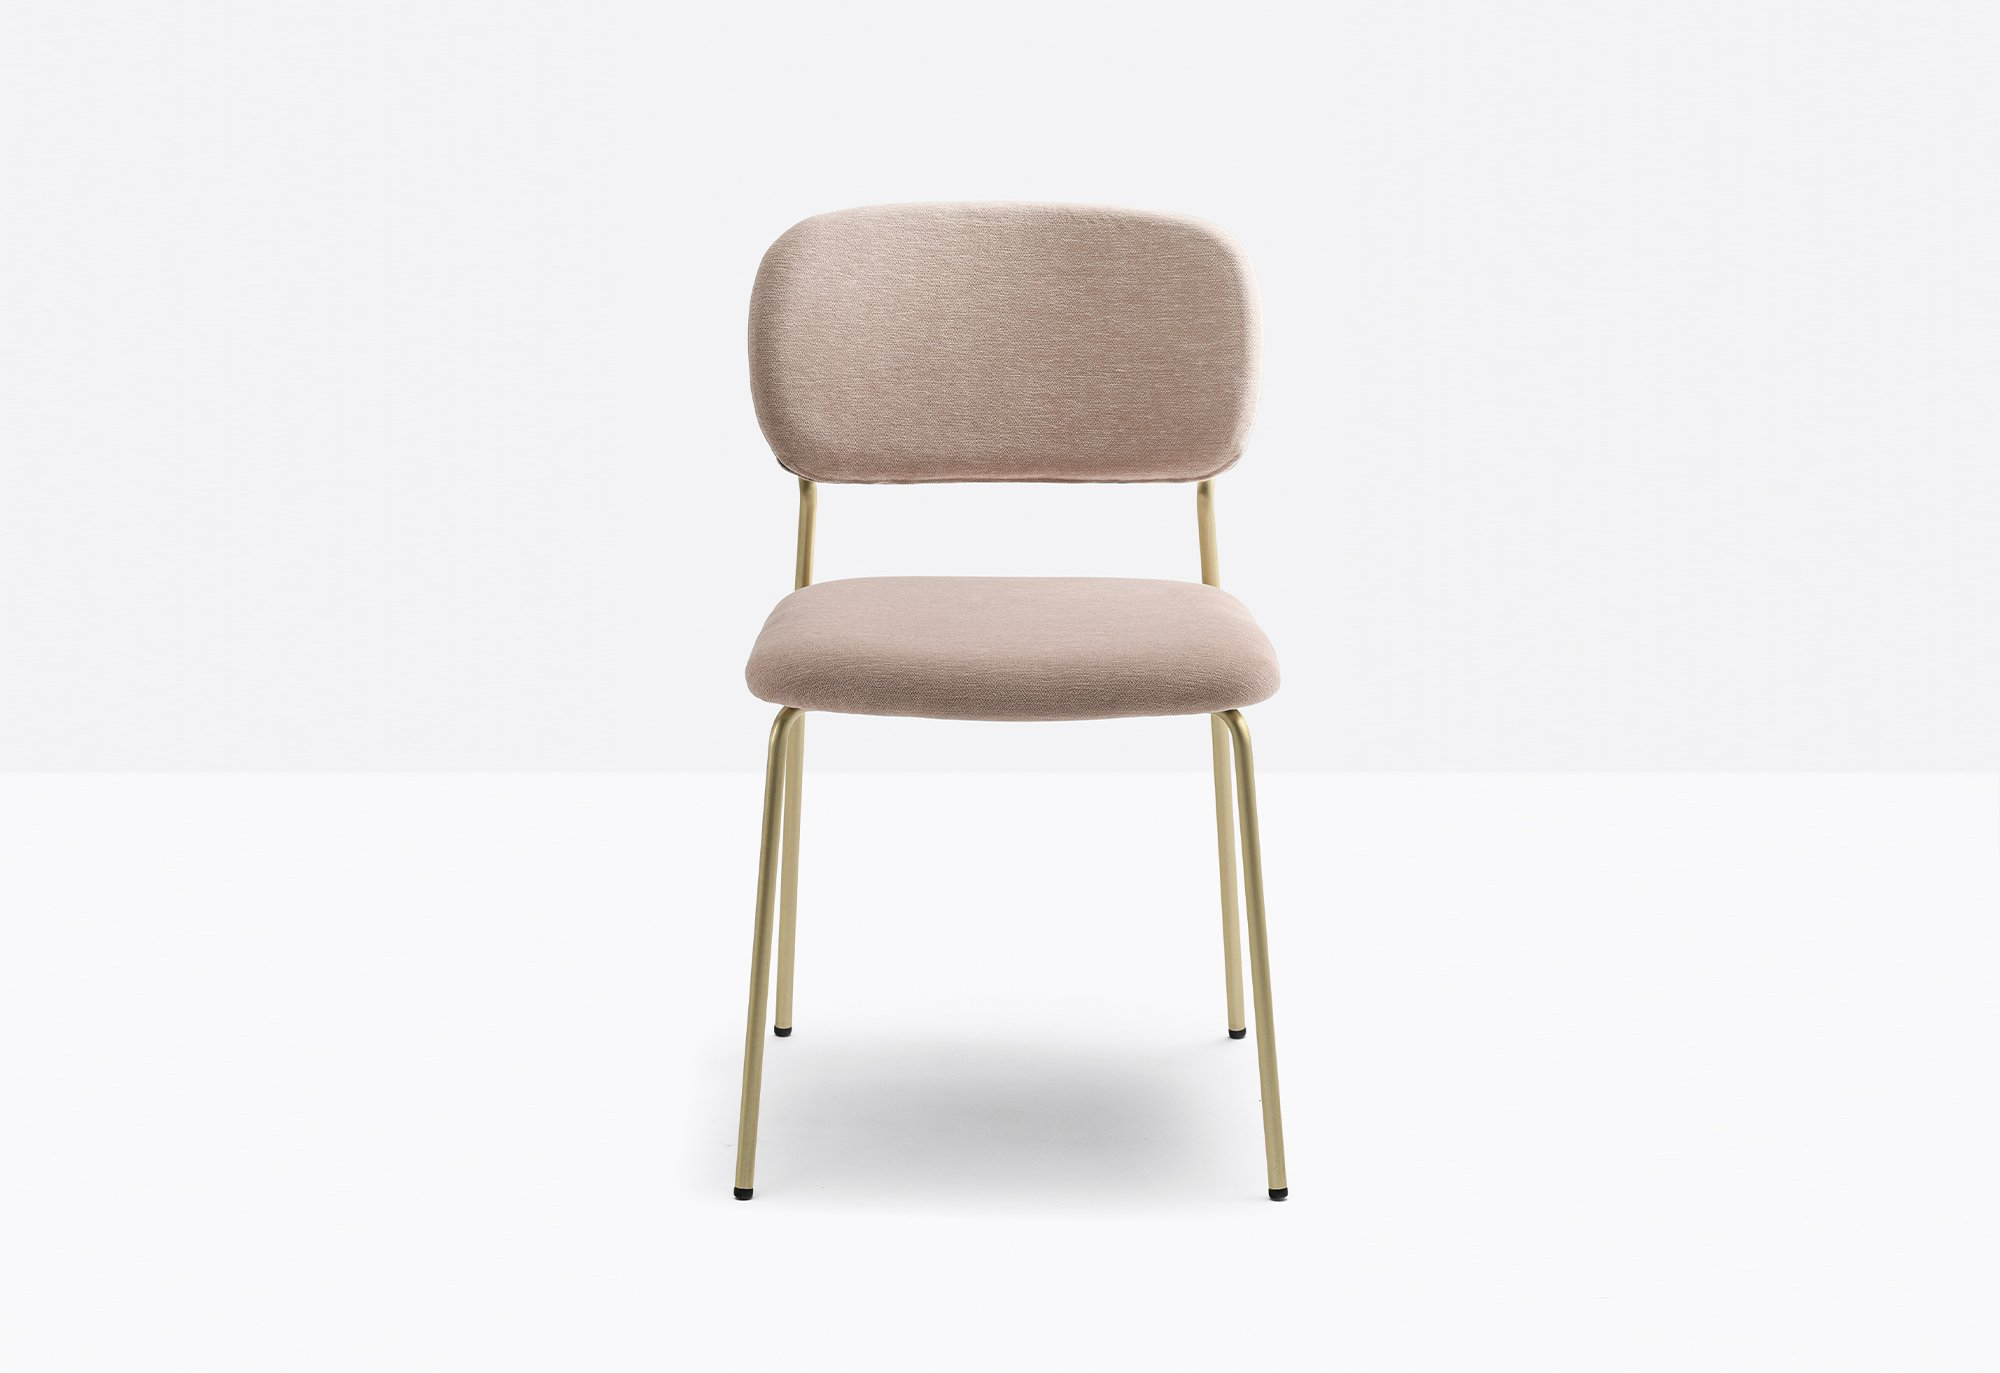 Jazz 3719 Chair from Pedrali, designed by Pedrali R&D